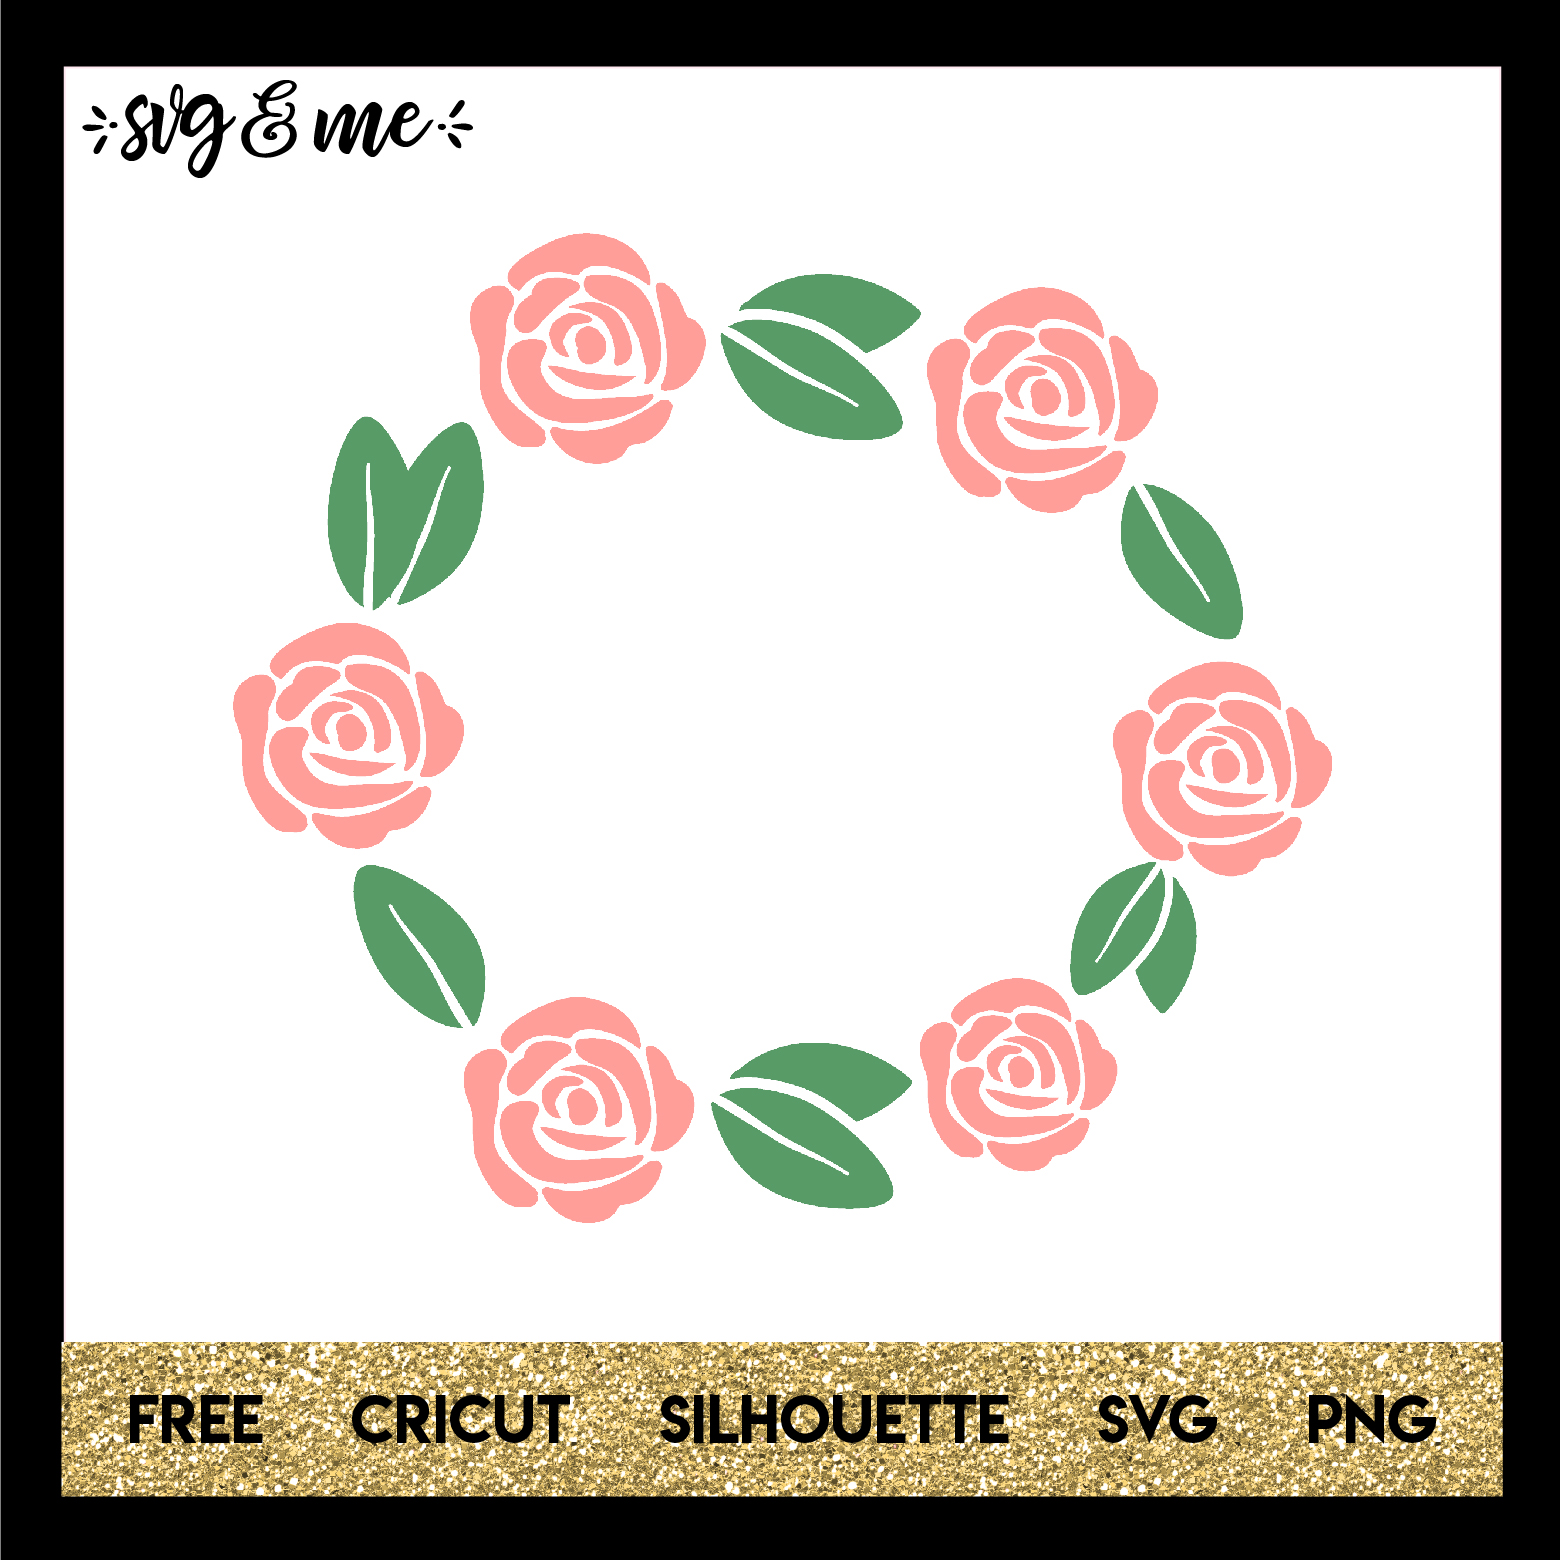 FREE SVG CUT FILE for Cricut, Silhouette and more - Rose Wreath SVG